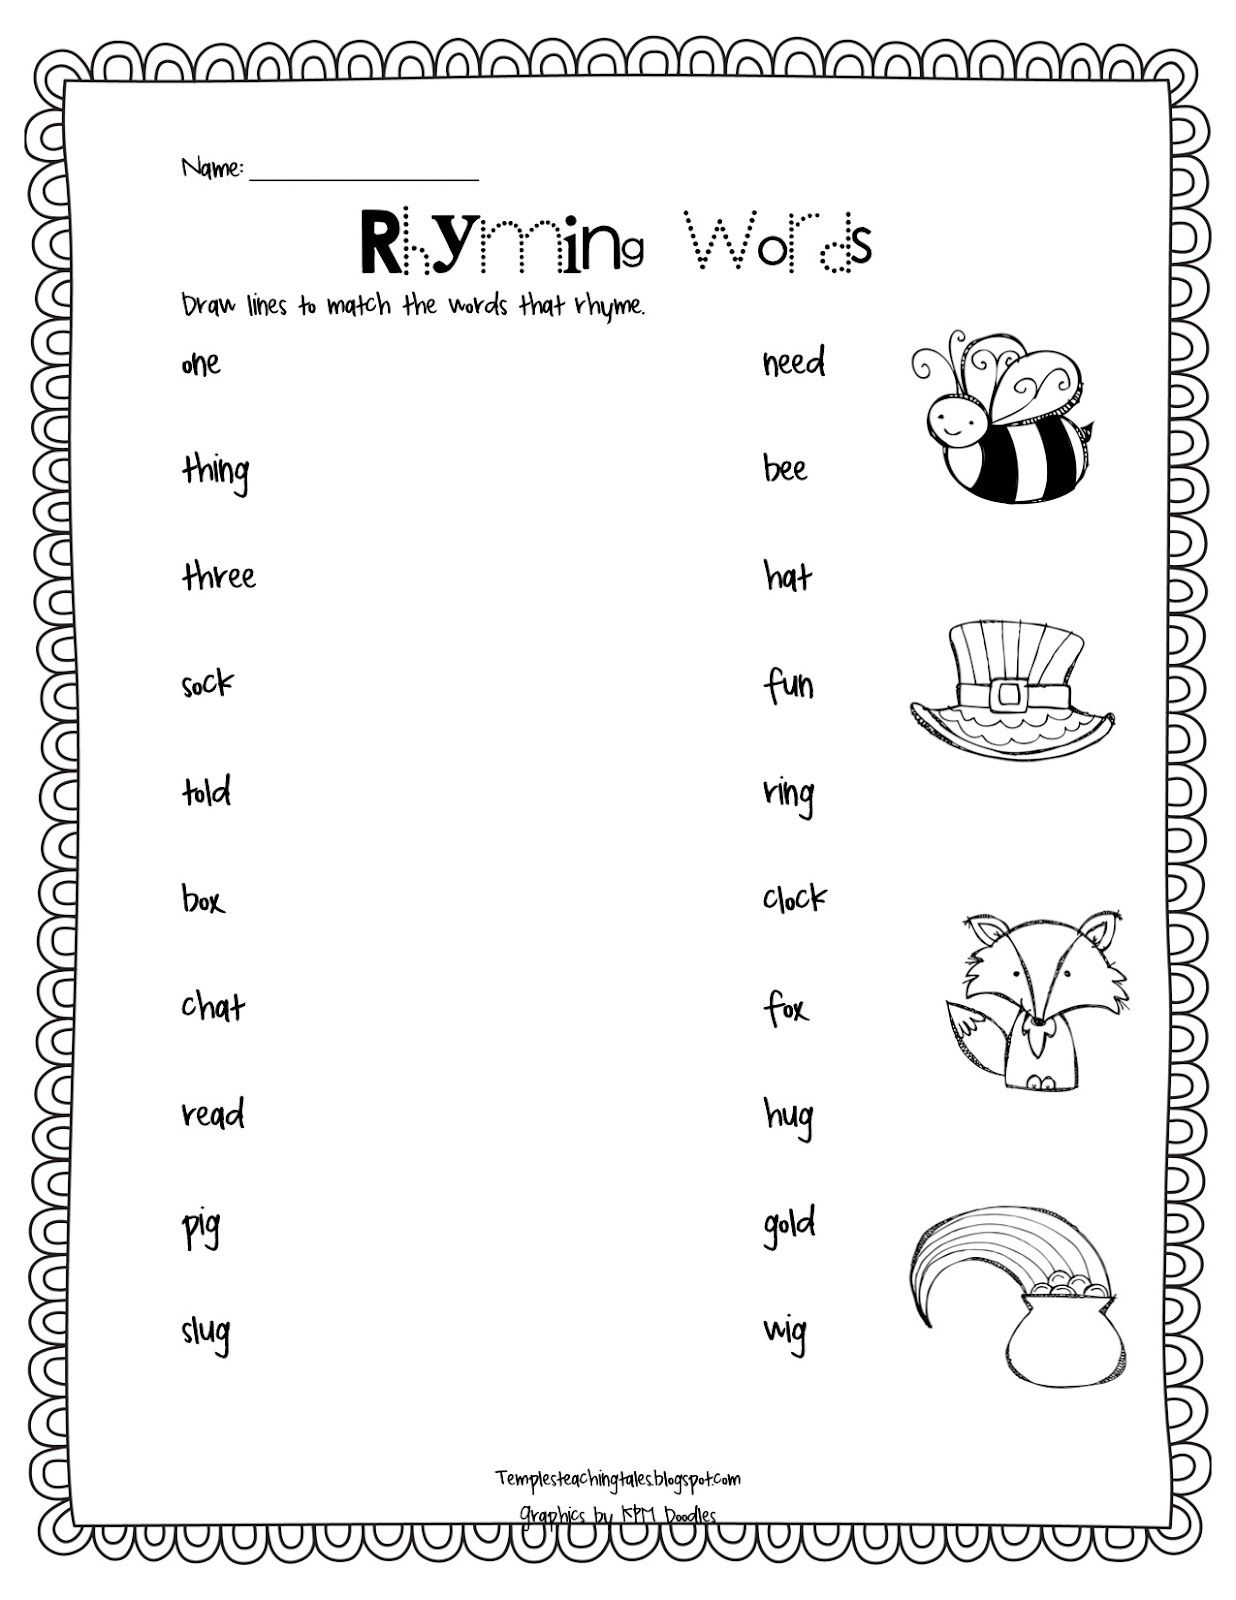 Kindergarten Preschool Reading Writing Worksheets Rhyming words – Rhyming Word Worksheets for Kindergarten